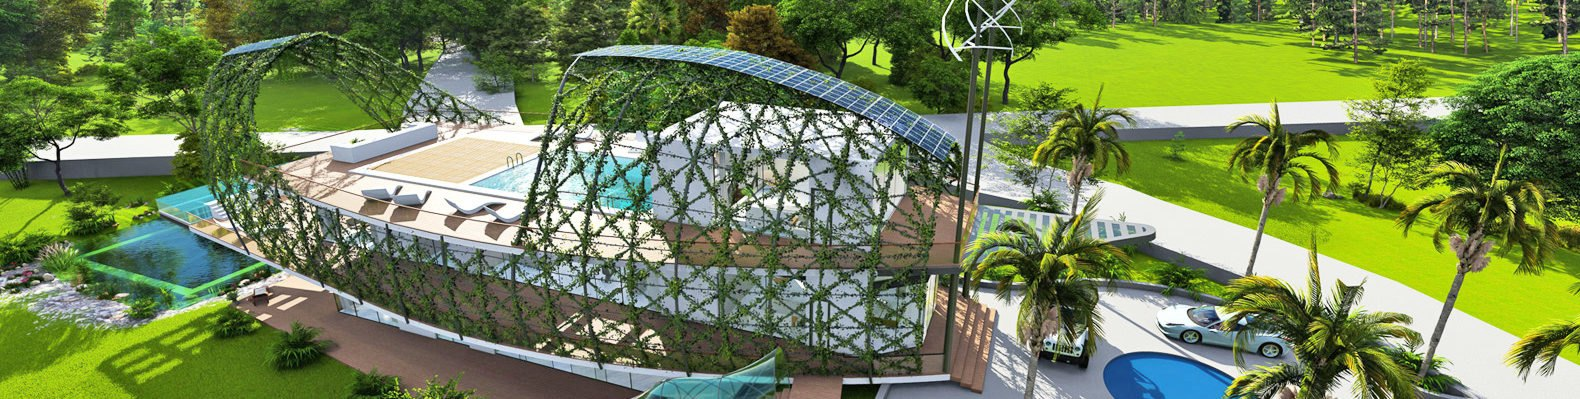 Rendering: Cocoon home surrounded by green land